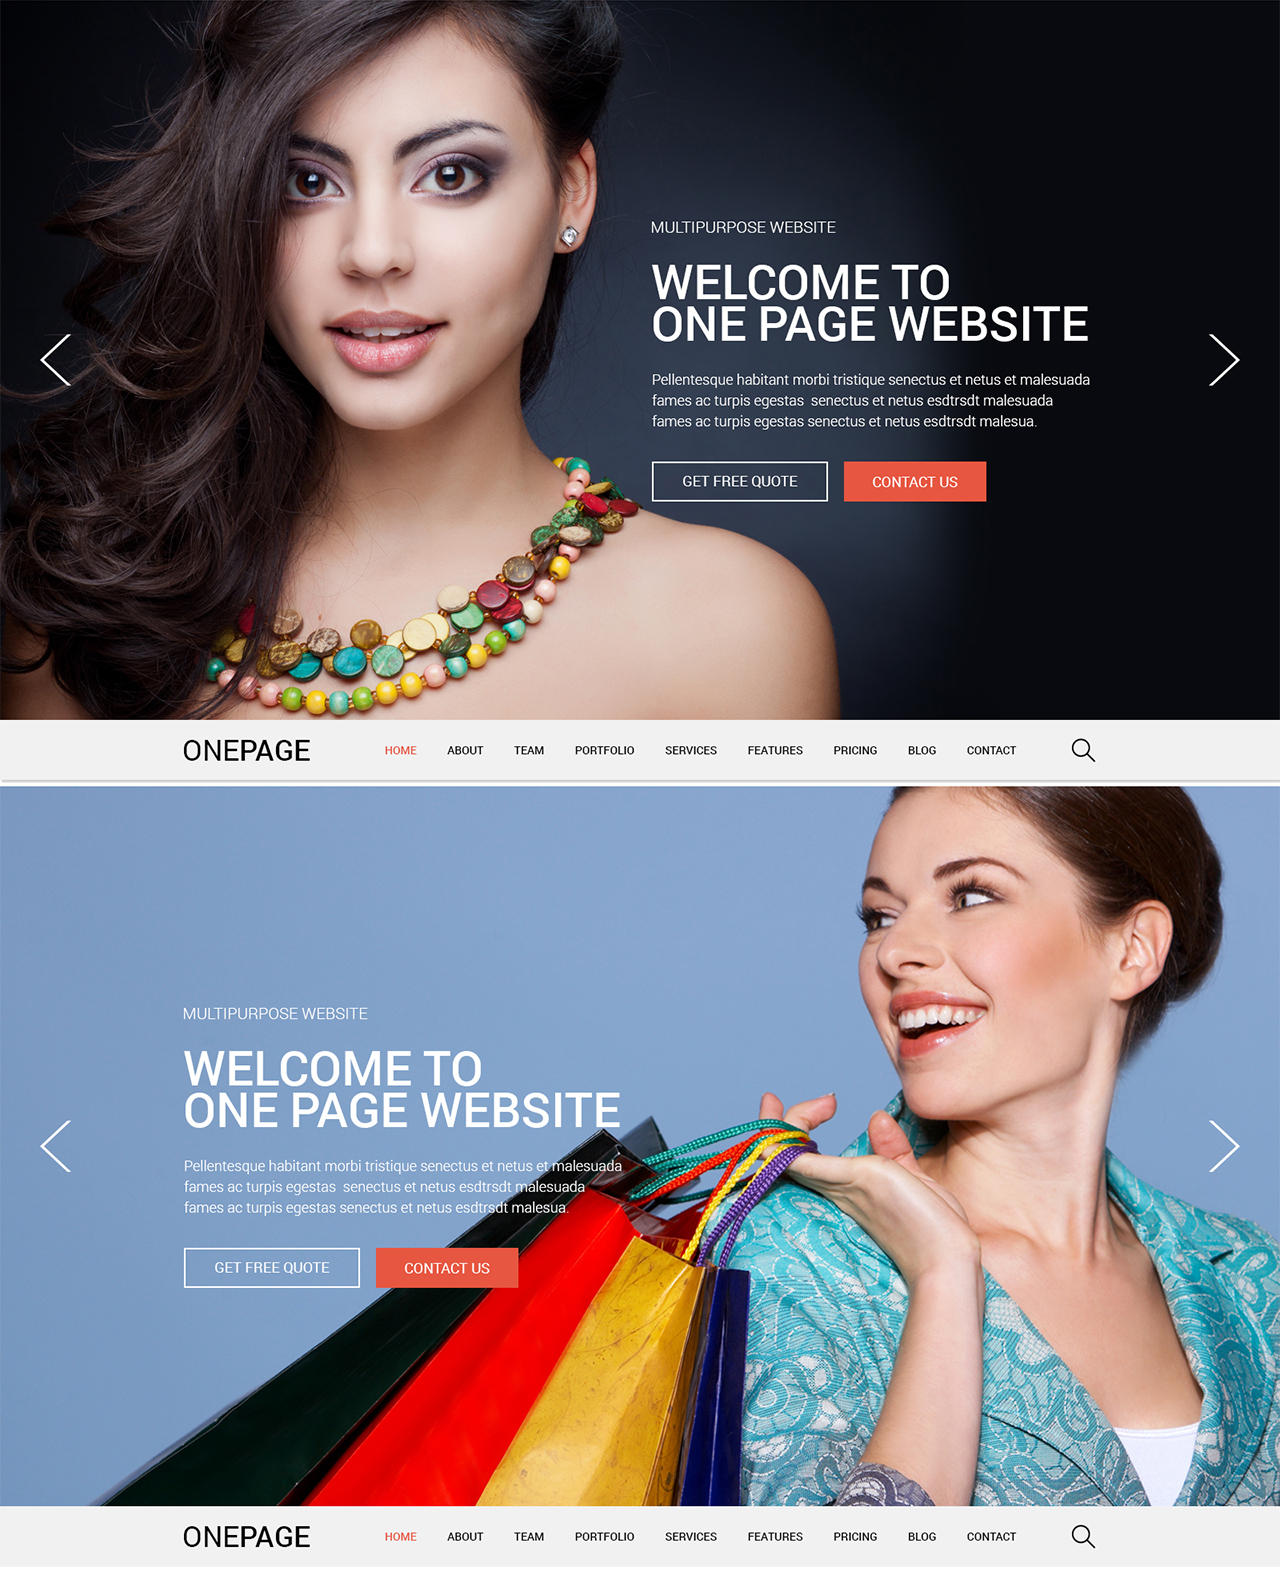 PSD to Responsive HTML by AliA - 65575